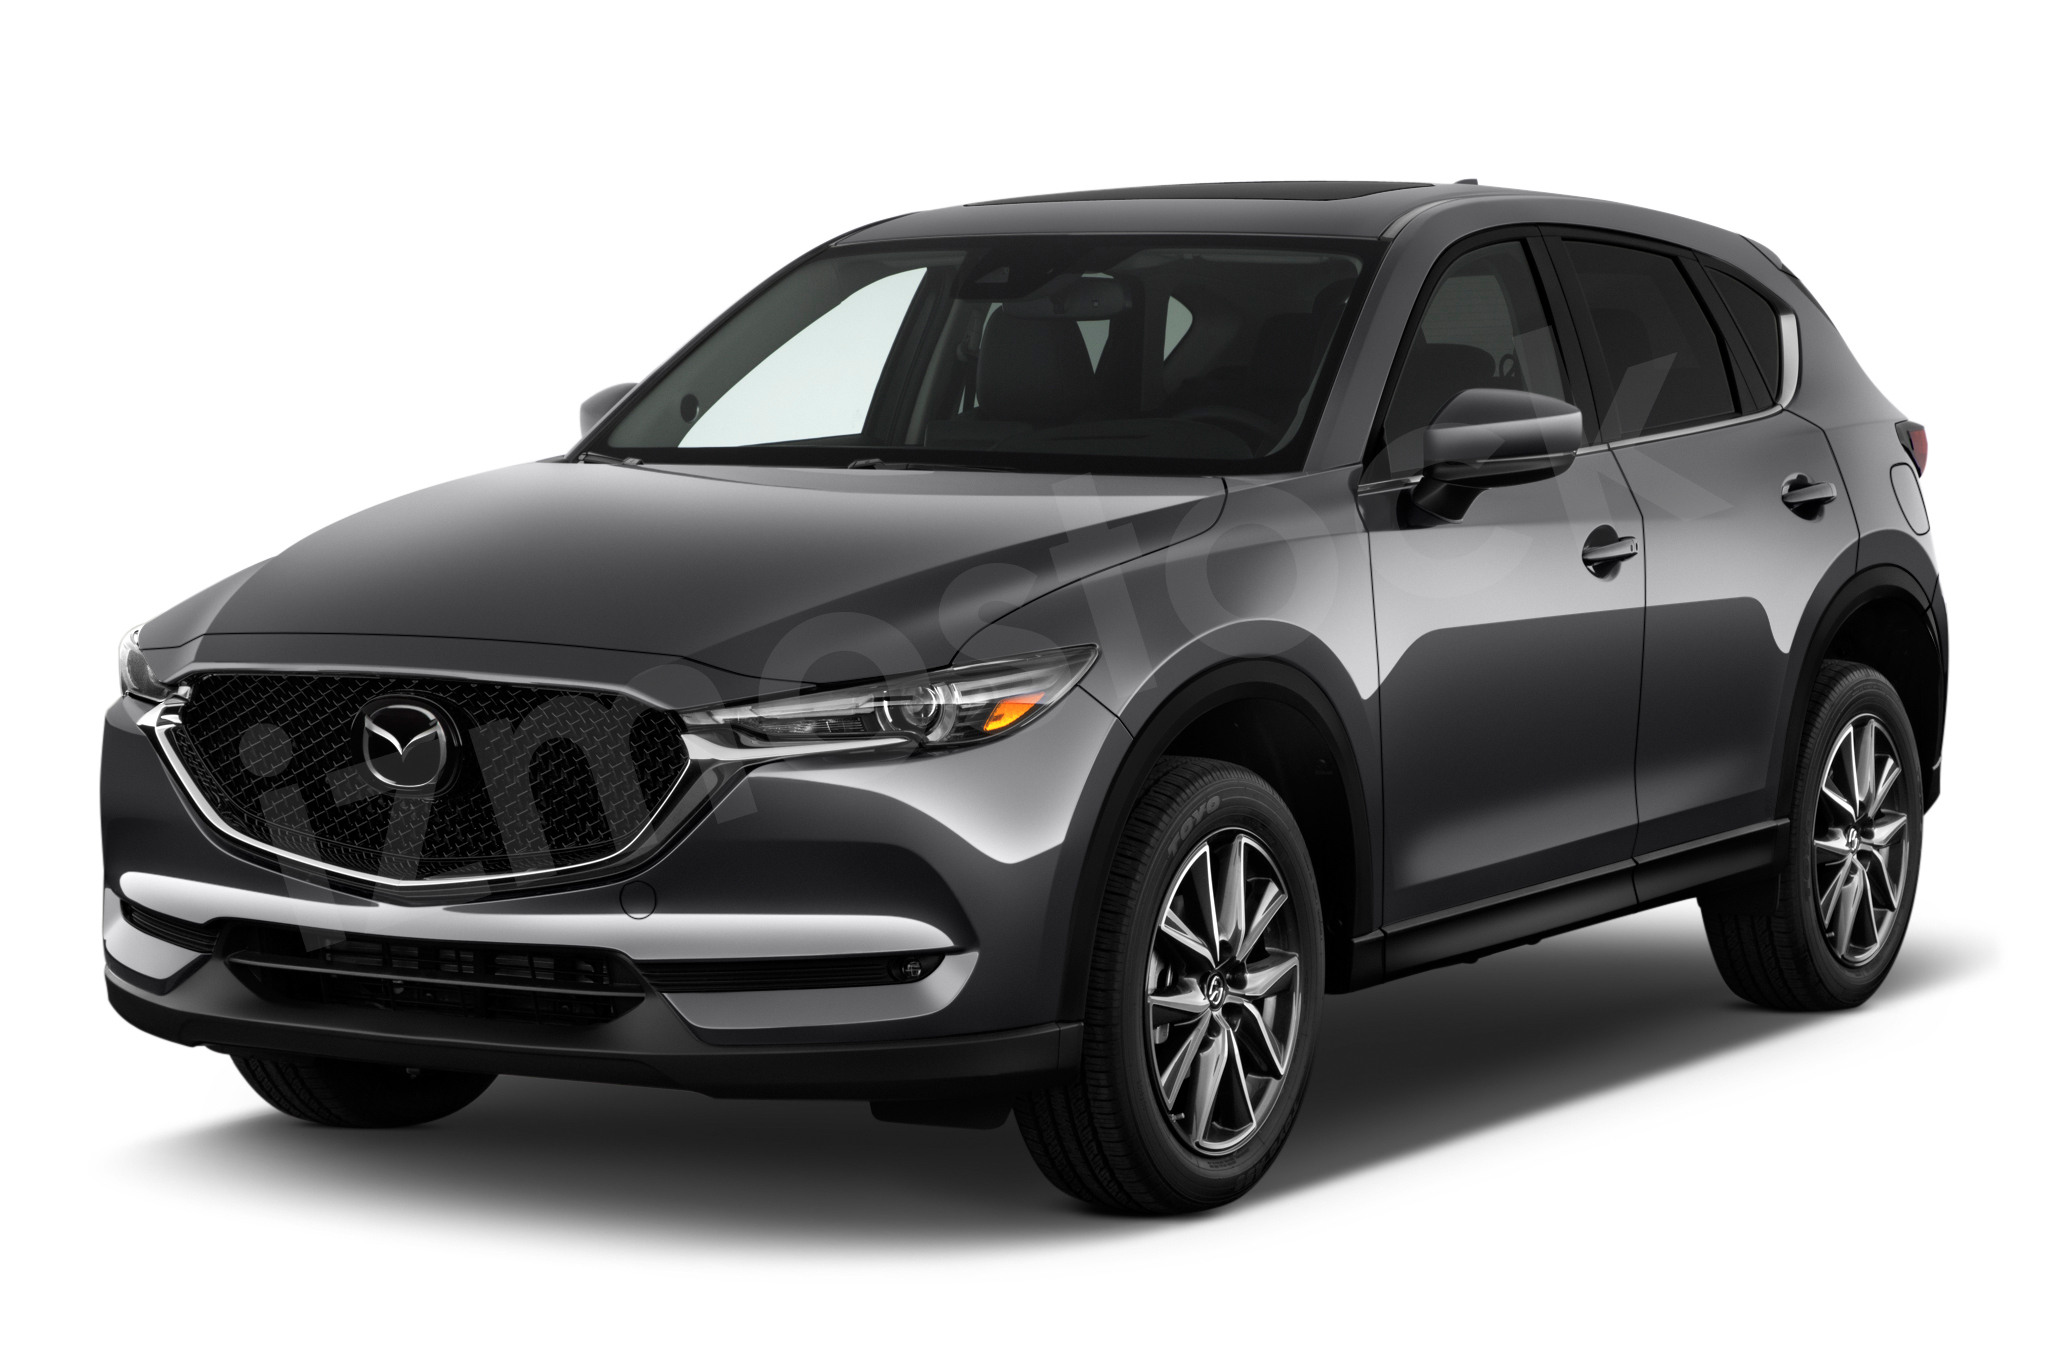 2017 mazda cx5 gt pictures review release date price. Black Bedroom Furniture Sets. Home Design Ideas